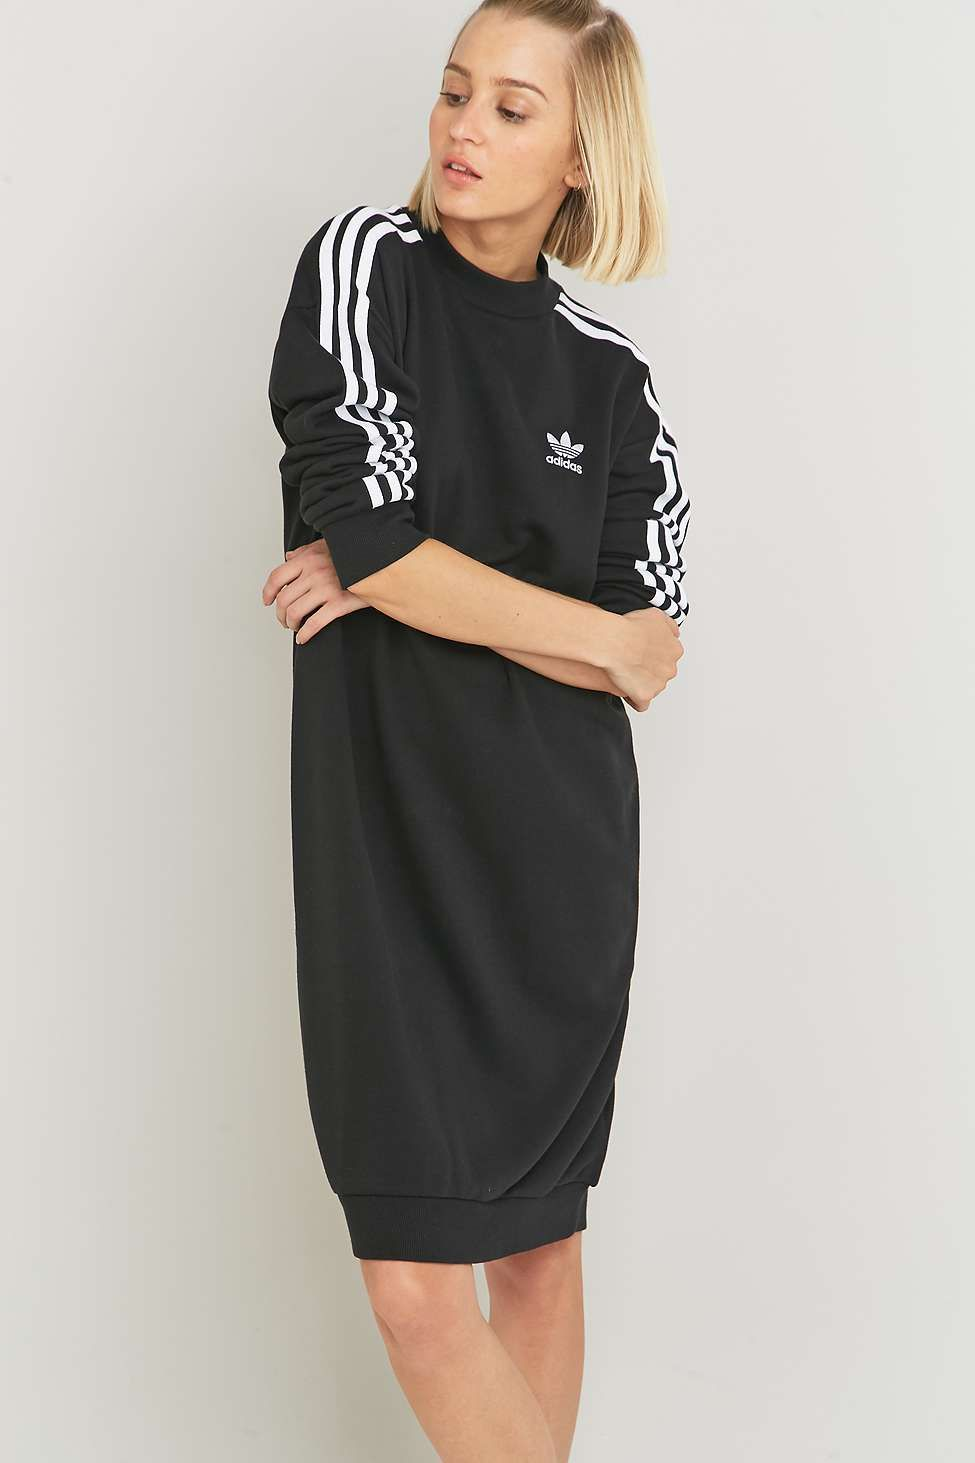 Originals Black Herfst 3 Midi Adidas Winter Dress Stripe PB6Op